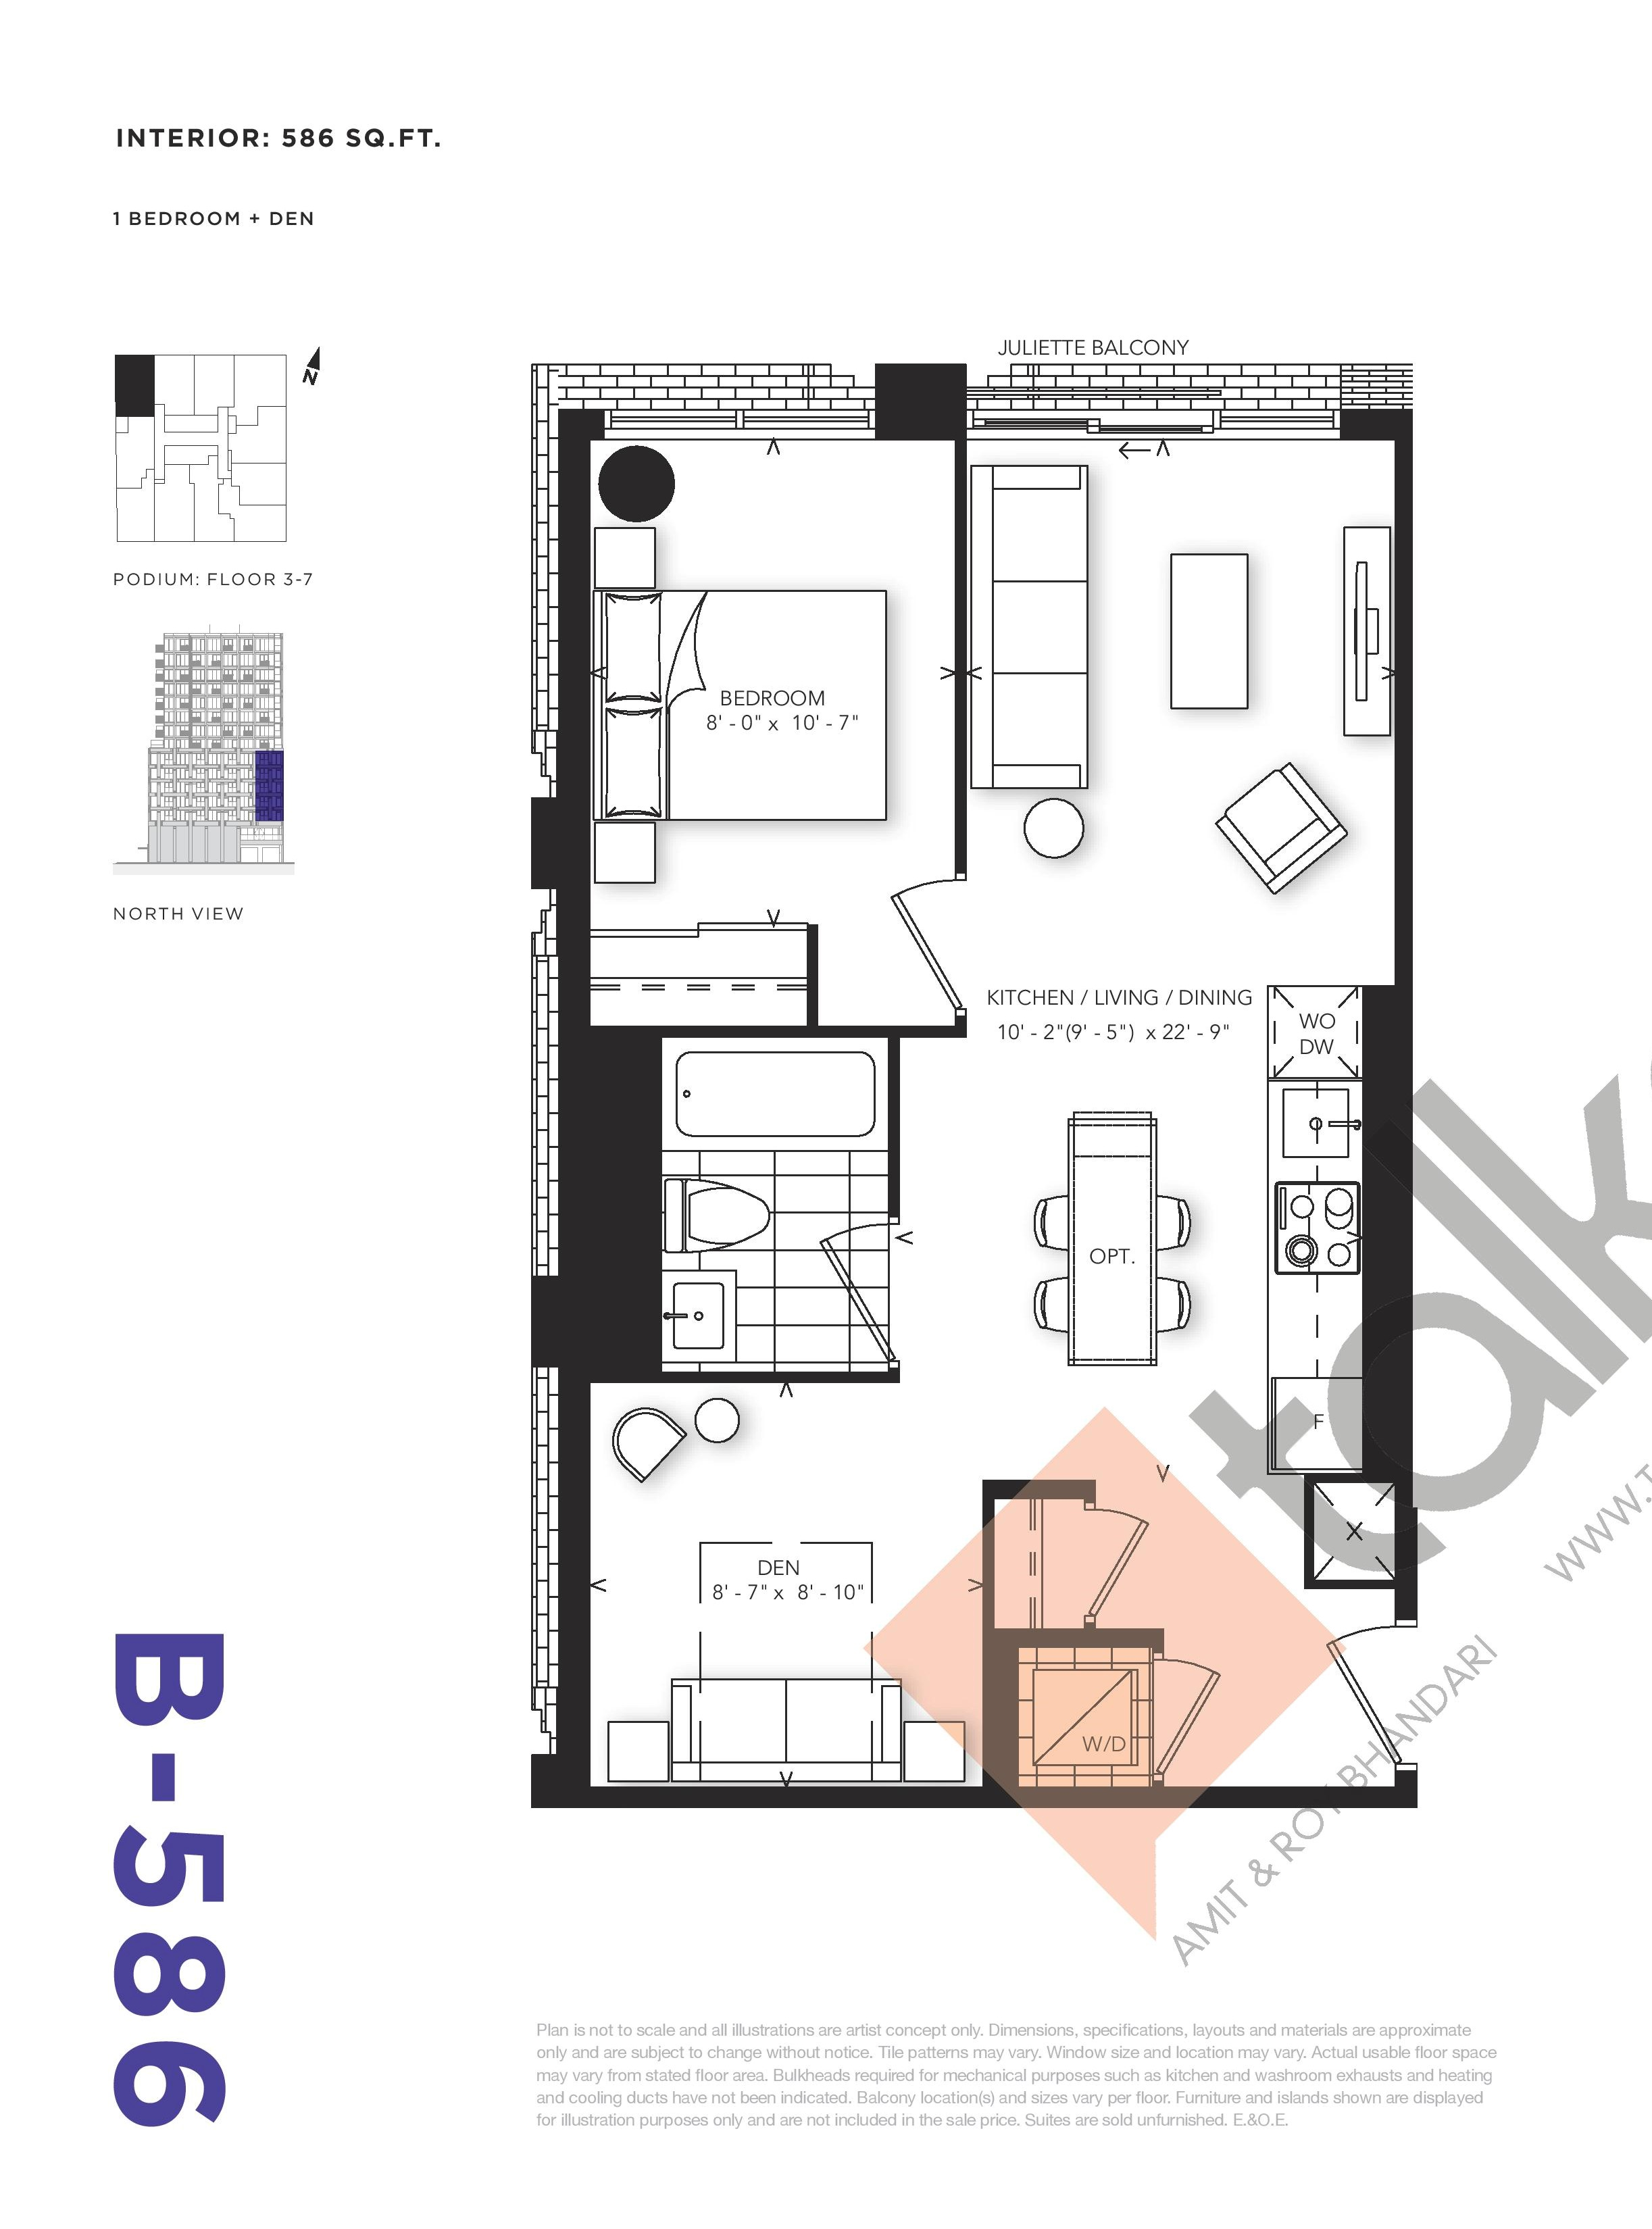 B-586 Floor Plan at RUSH Condos - 586 sq.ft